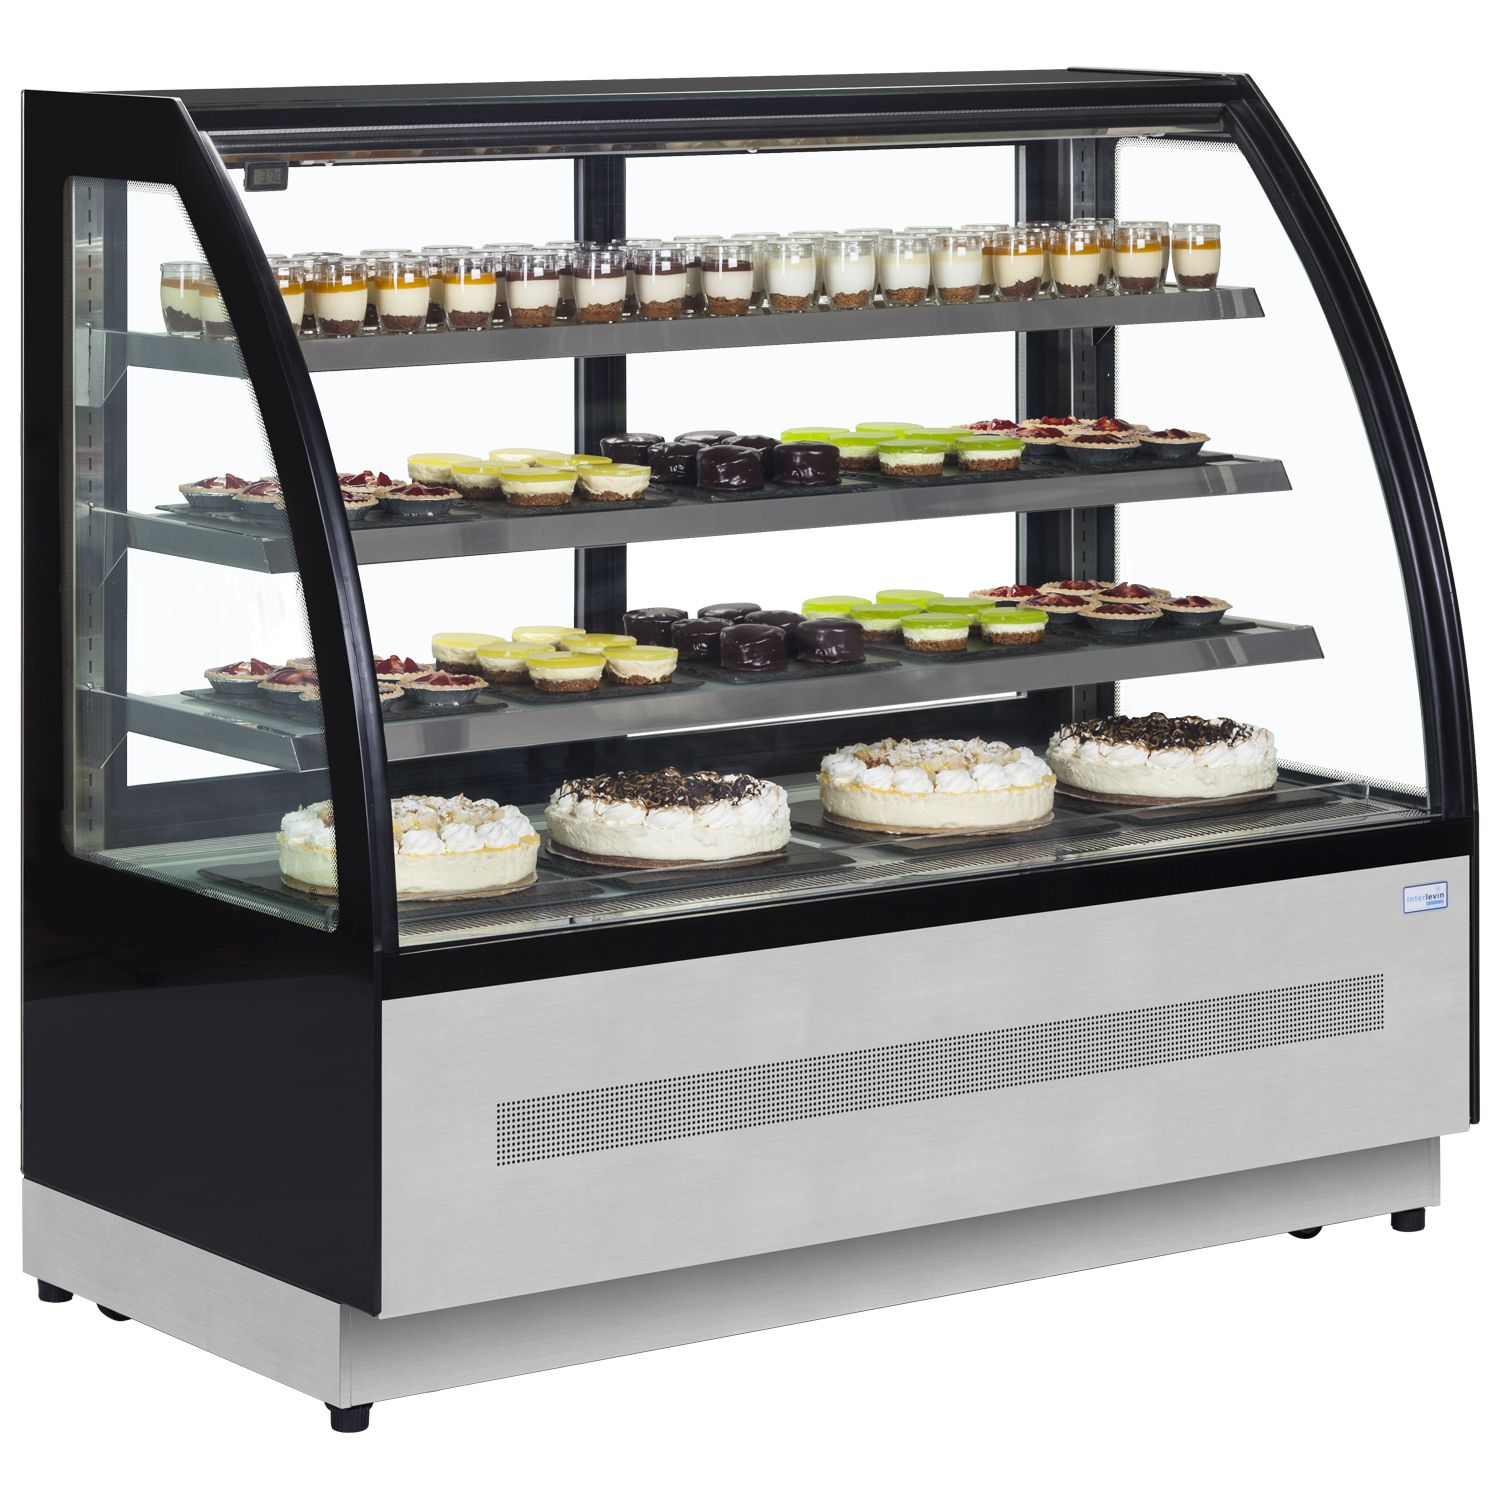 Bakery Display Cabinet Interlevin Lpd1200c Chilled Display Cabinet In 2018 Coffee Shop